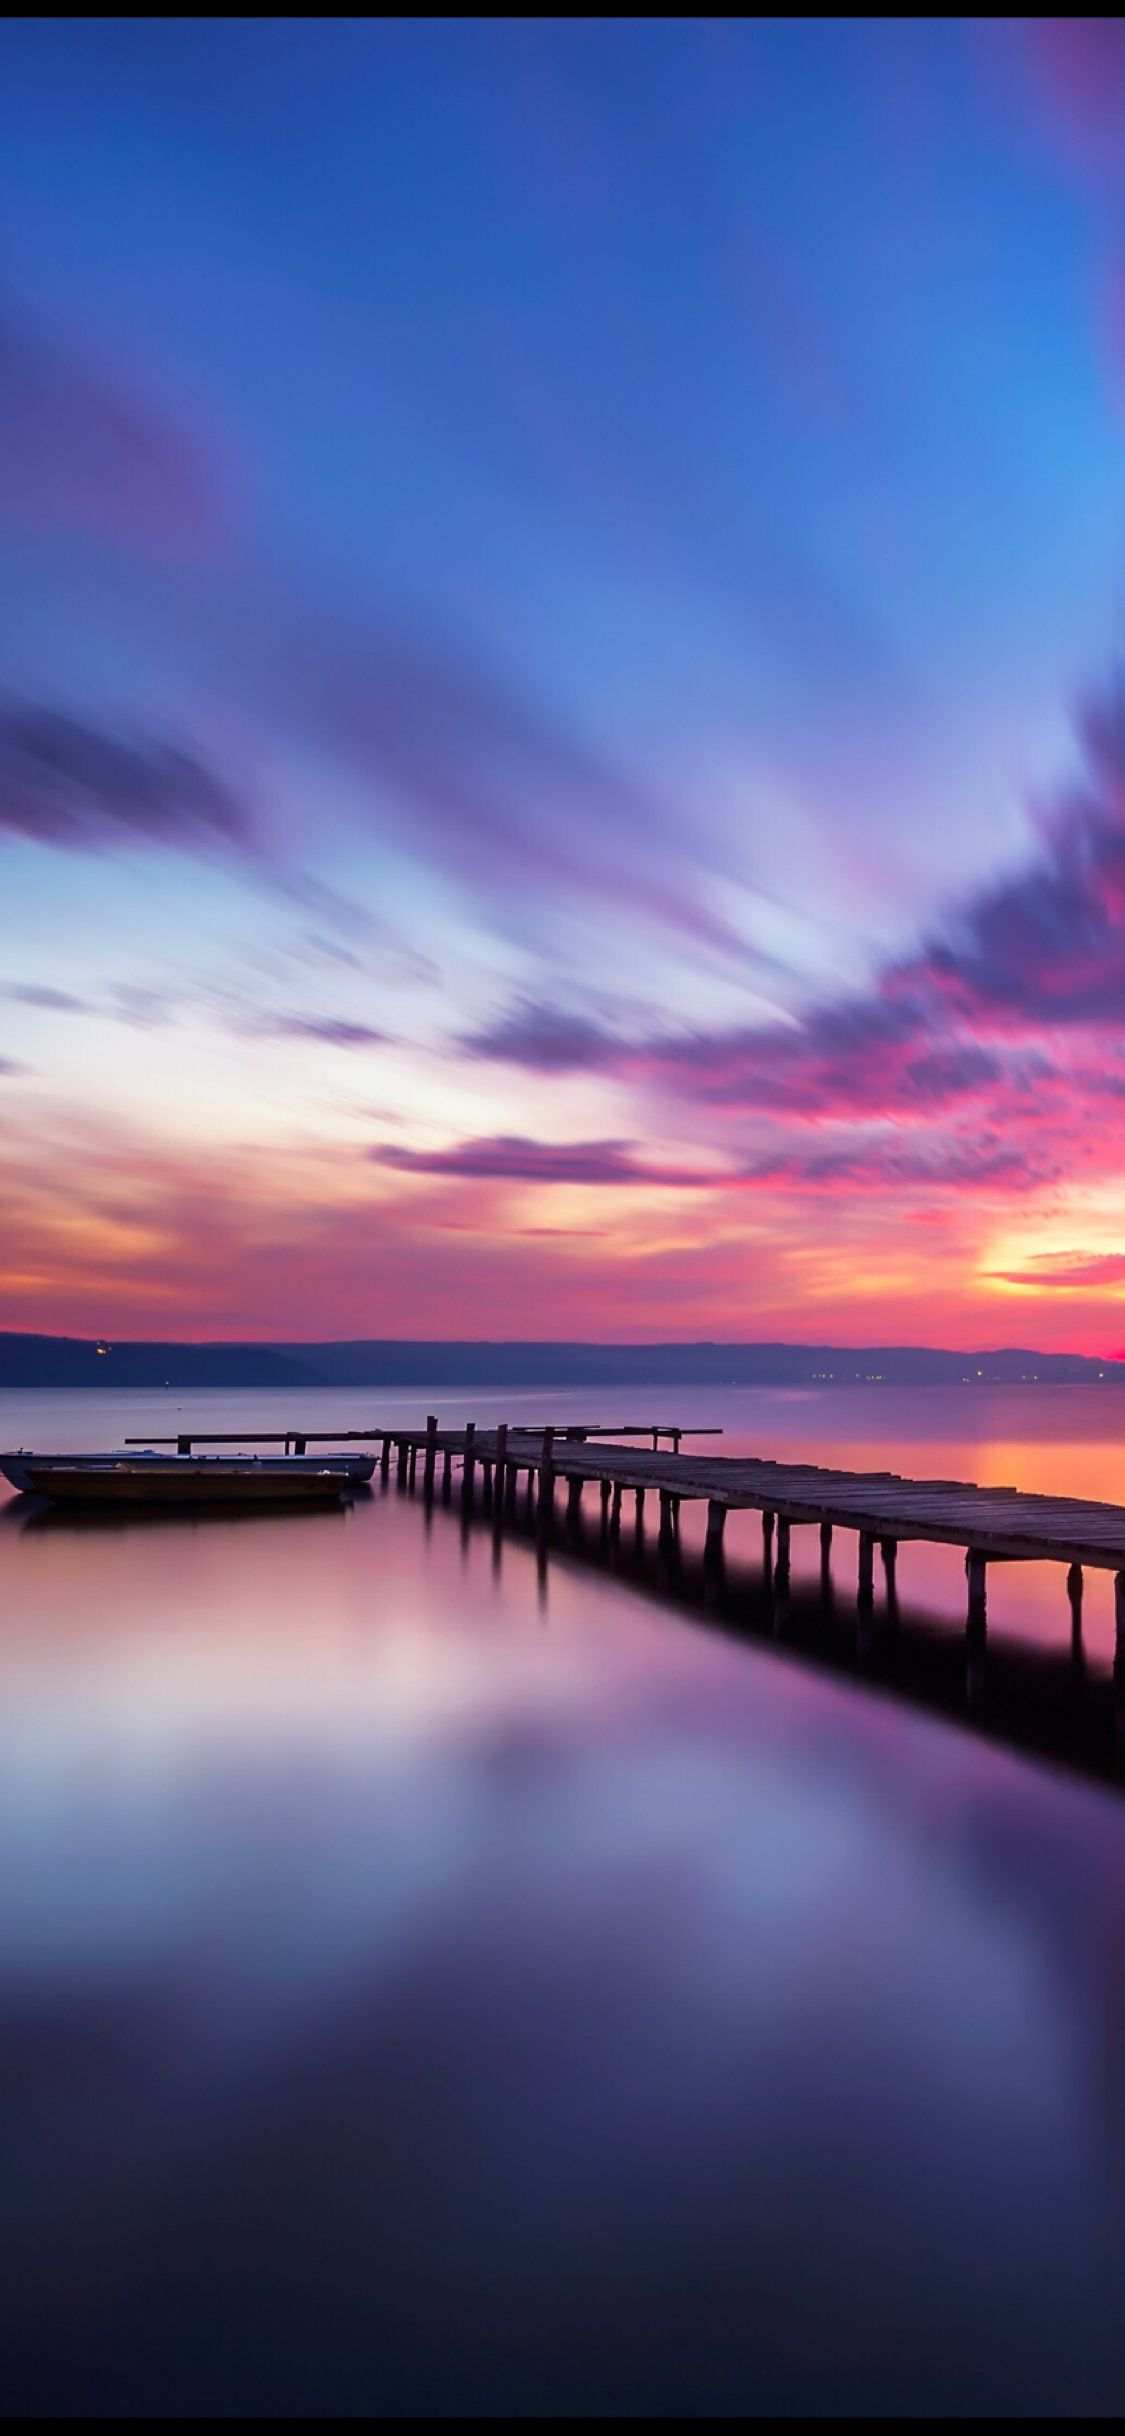 A pier into the sunset